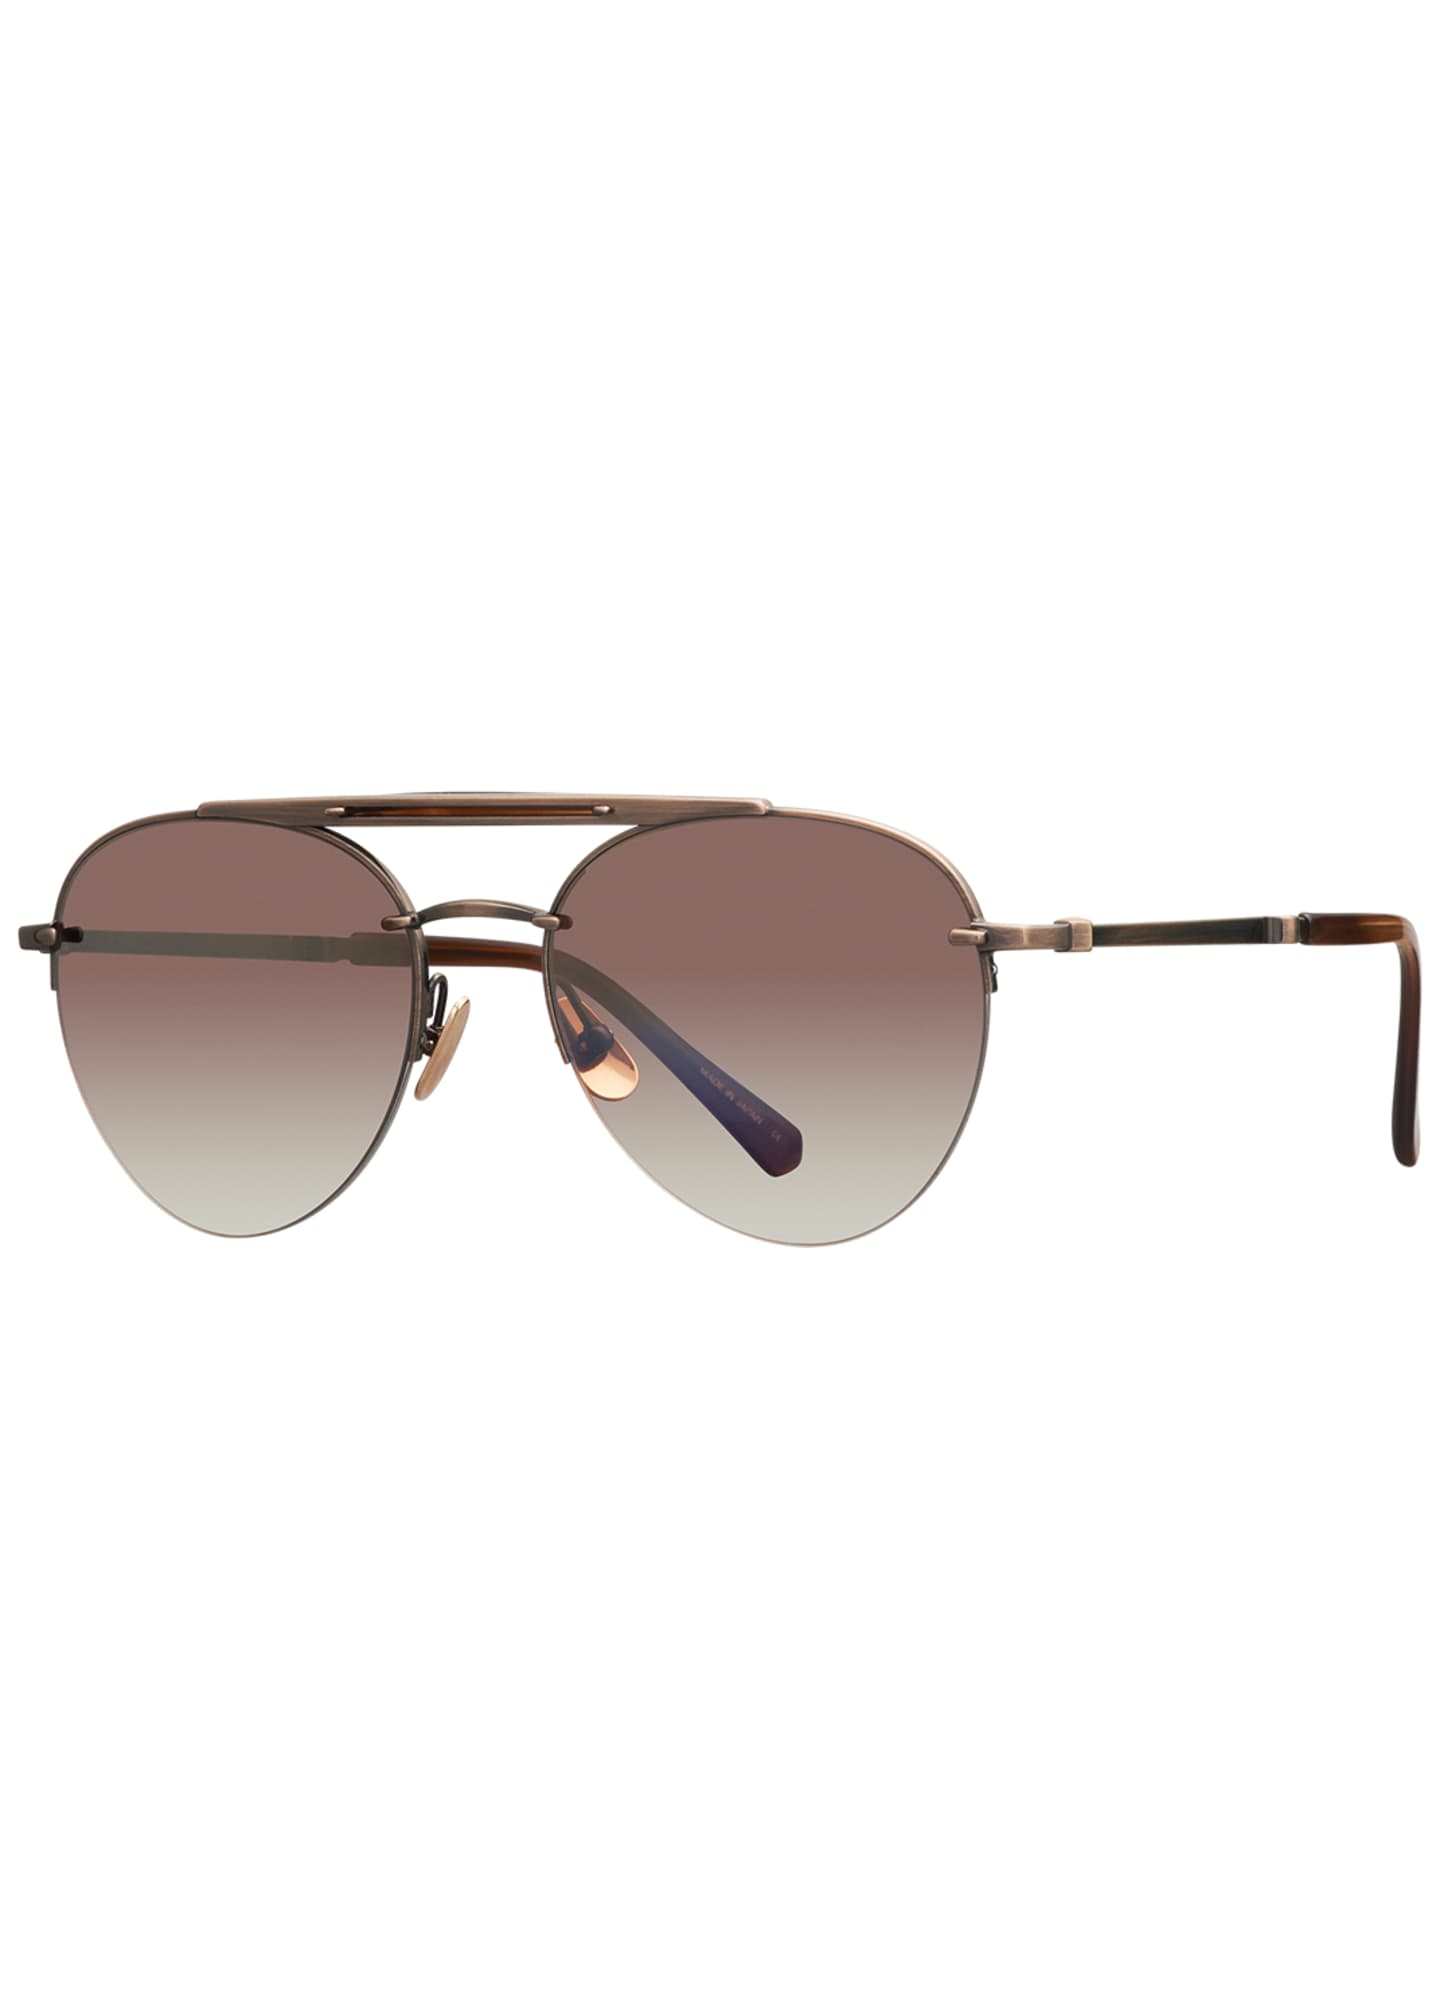 Mr. Leight Platinum Plated Titanium Aviator Sunglasses w/